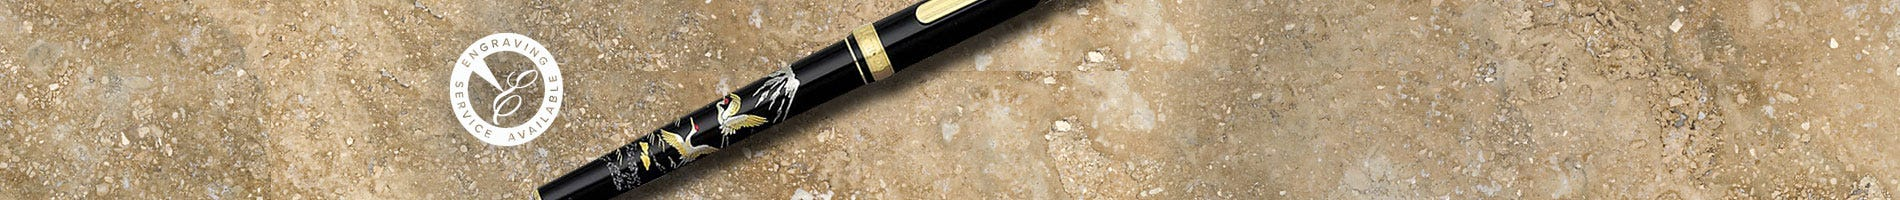 Platinum rollerball pen decorated with Japanese Maki-e design